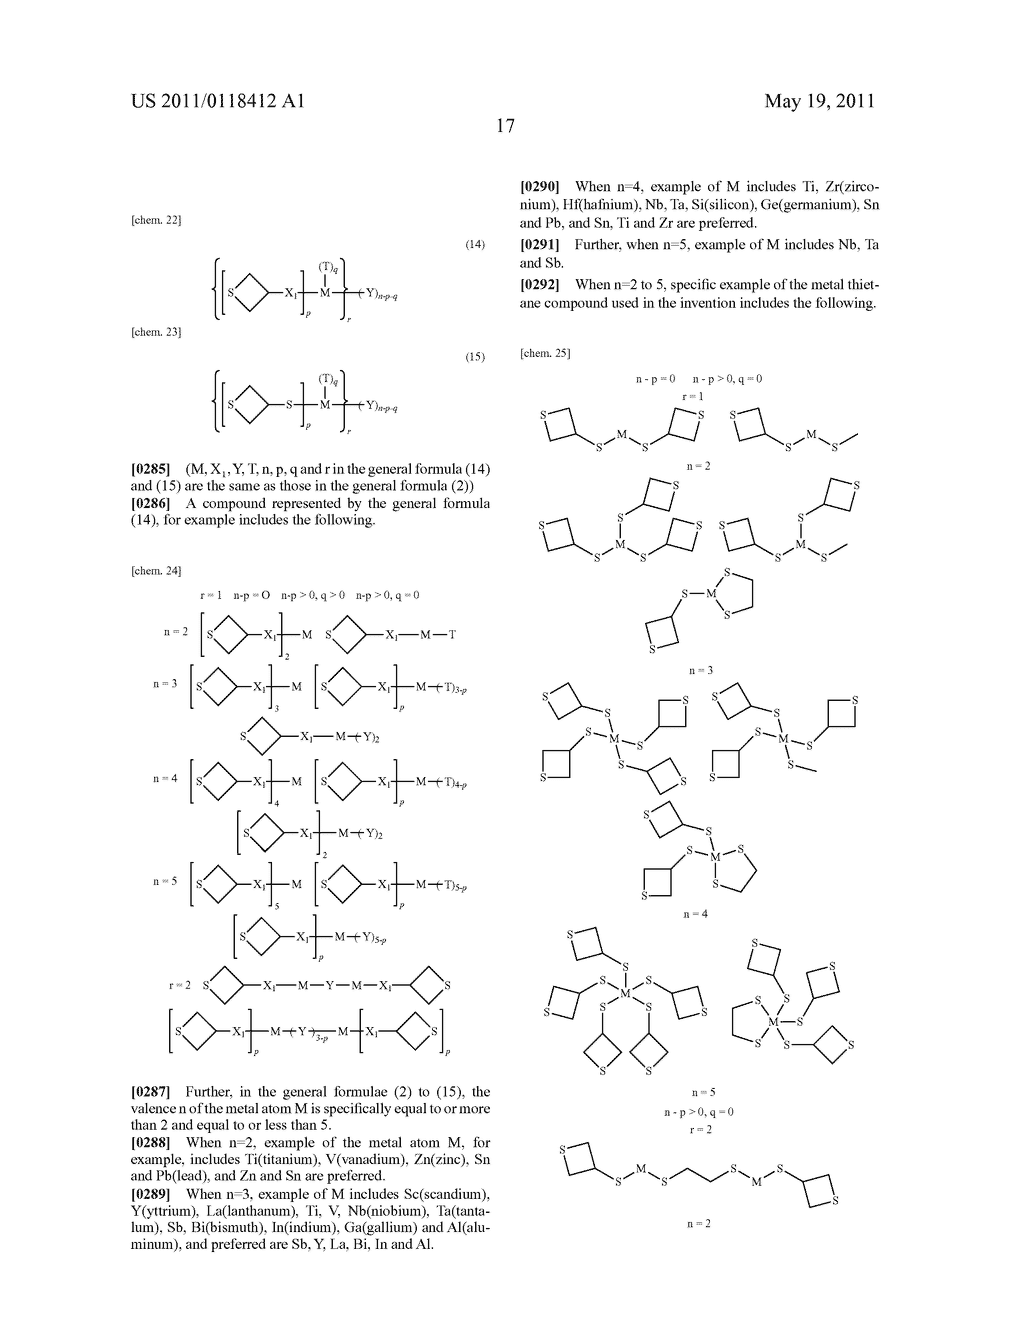 THIETANE COMPOUND, POLYMERIZABLE COMPOSITION CONTAINING THE SAME, RESIN, METHOD FOR PRODUCING THE RESIN, AND USE OF THE POLYMERIZABLE COMPOSITION AND THE RESIN - diagram, schematic, and image 18